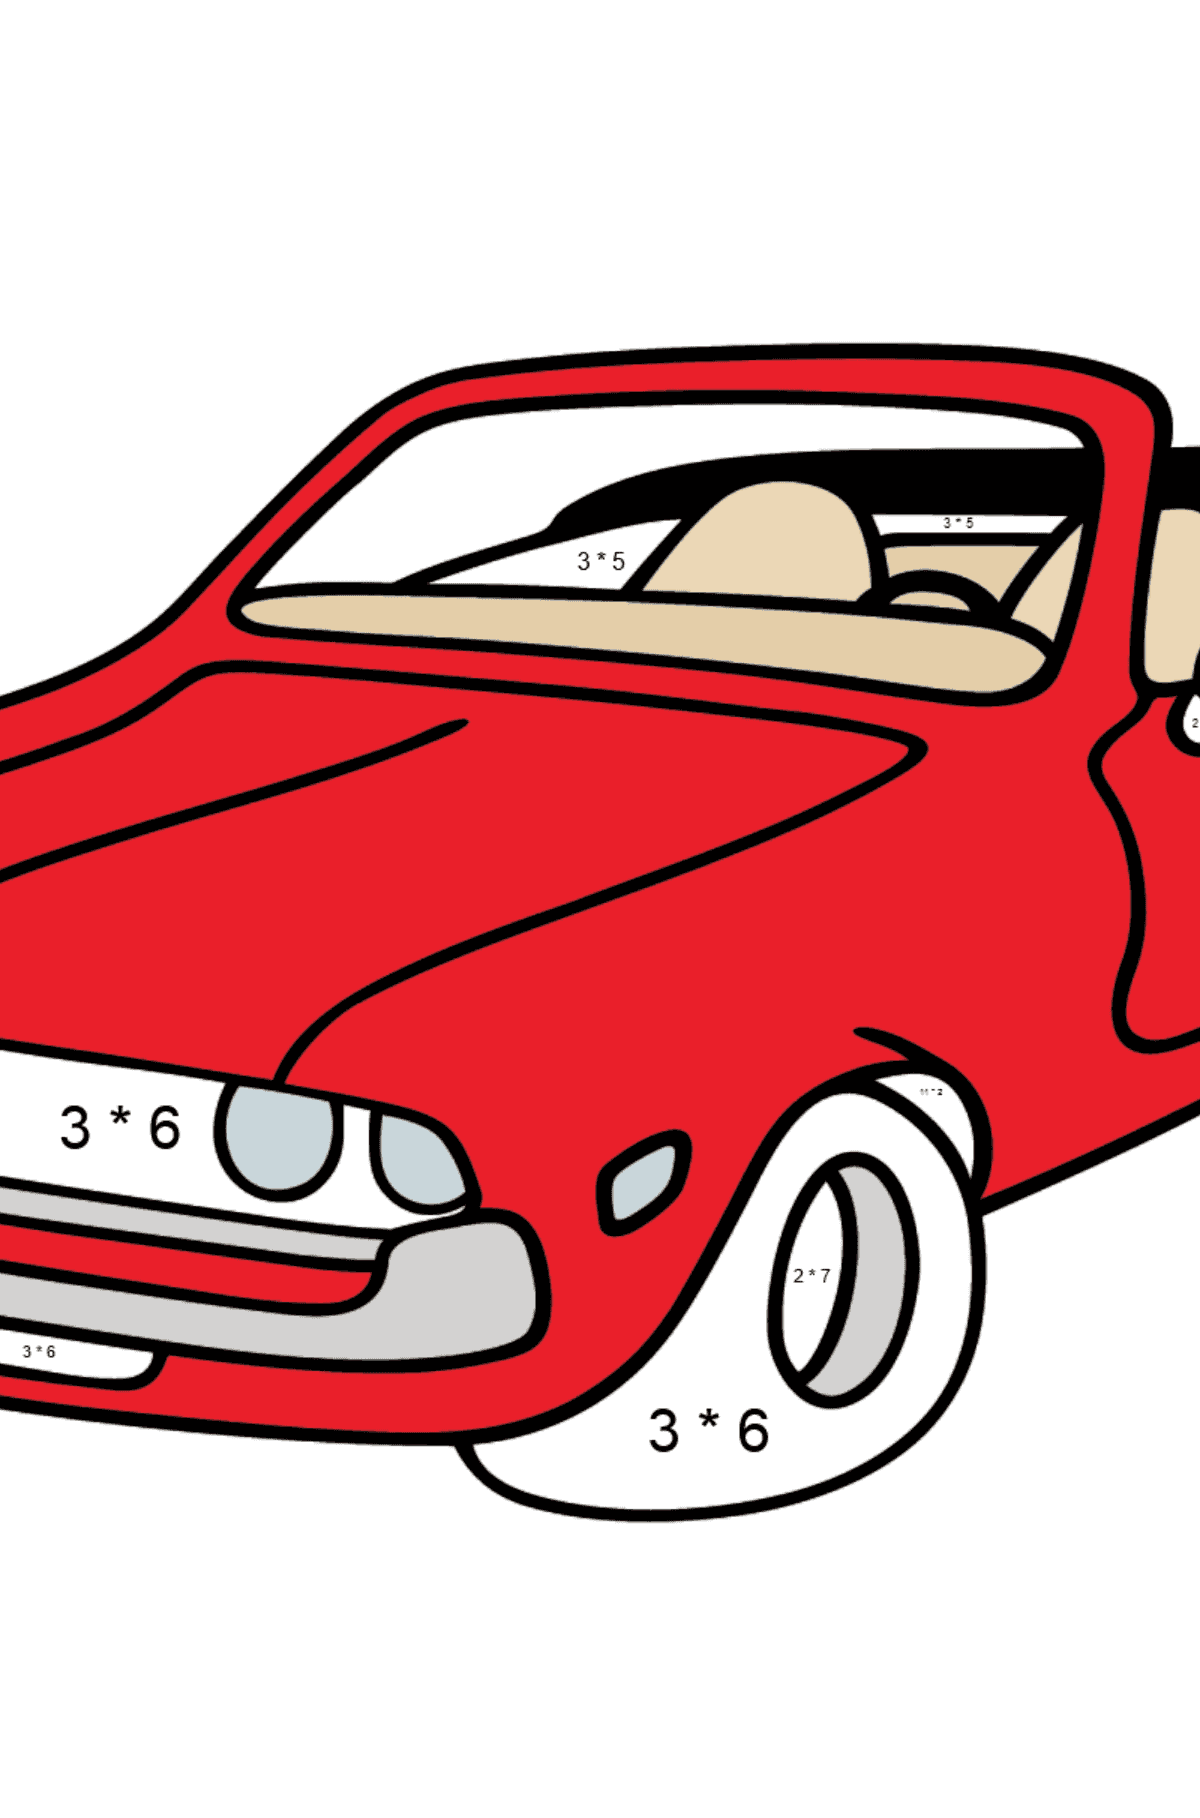 Open Top Cars coloring page - Math Coloring - Multiplication for Kids